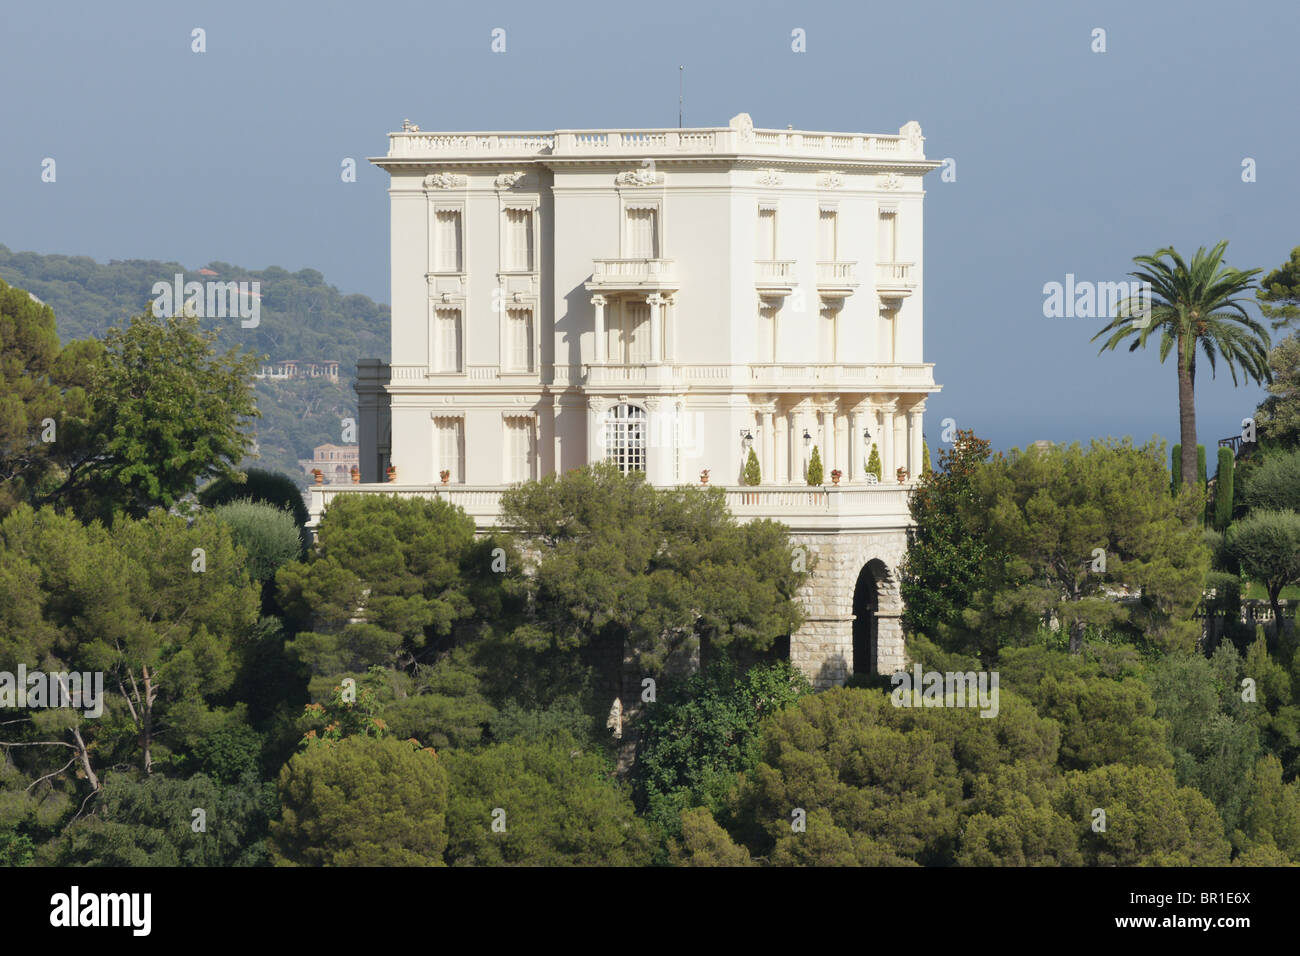 monaco villa la vigie residence of the grimaldi family and karl stock photo 31380578 alamy. Black Bedroom Furniture Sets. Home Design Ideas